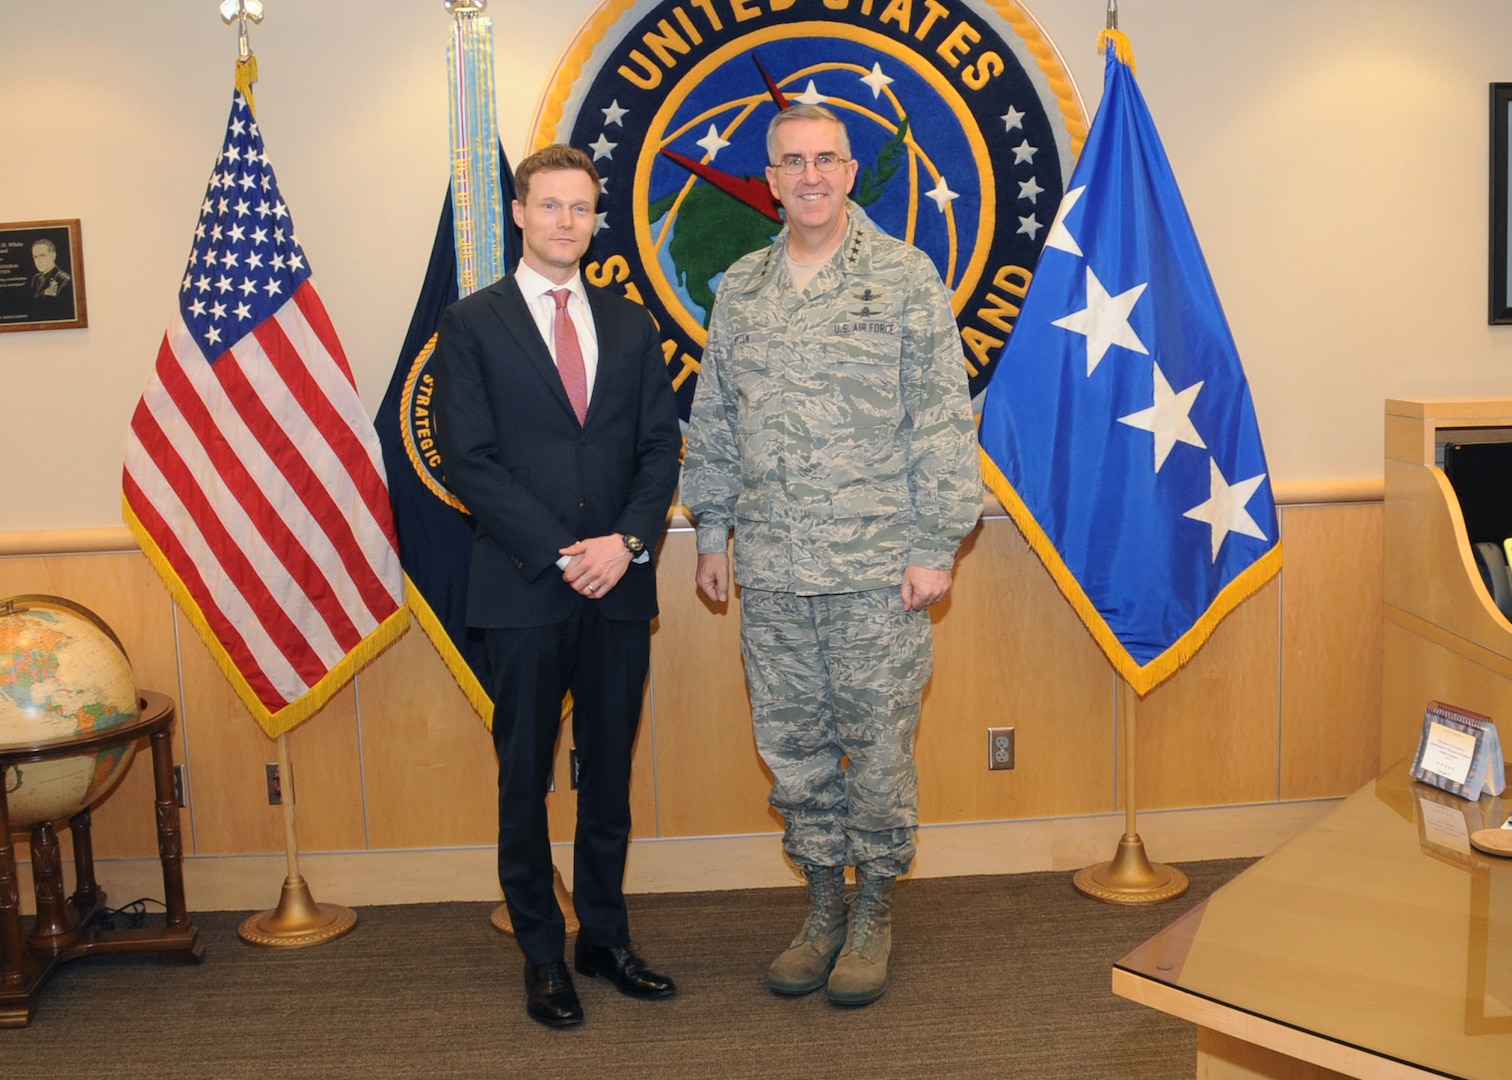 """U.S. Air Force Gen. John E. Hyten (right), commander of U.S. Strategic Command (USSTRATCOM), welcomes Dr. Matthew Kroenig, associate professor in the Department of Government and School of Foreign Service at Georgetown University and a senior fellow in the Brent Scowcroft Center on International Security at The Atlantic Council, to USSTRATCOM headquarters, Offutt Air Force base, Neb., March 29, 2017. While here, Kroenig held discussions with Hyten and delivered a presentation to command members on """"The Logic of American Nuclear Strategy."""" In his remarks, Dr. Kroenig discussed the advantages and disadvantages of nuclear superiority; his perspective of nonproliferation; the results of hypothetical nuclear conflicts and crises; and other topics related to global nuclear capabilities. Georgetown University is one of more than 30 local and national academic institutions that make up the Deterrence and Assurance Academic Alliance – an organization that was started in Oct. 2014 to stimulate new thinking and develop future generations of deterrence practitioners. One of nine Department of Defense unified combatant commands, USSTRATCOM has global strategic missions assigned through the Unified Command Plan that include strategic deterrence; space operations; cyberspace operations; joint electronic warfare; global strike; missile defense; intelligence, surveillance and reconnaissance; and analysis and targeting."""